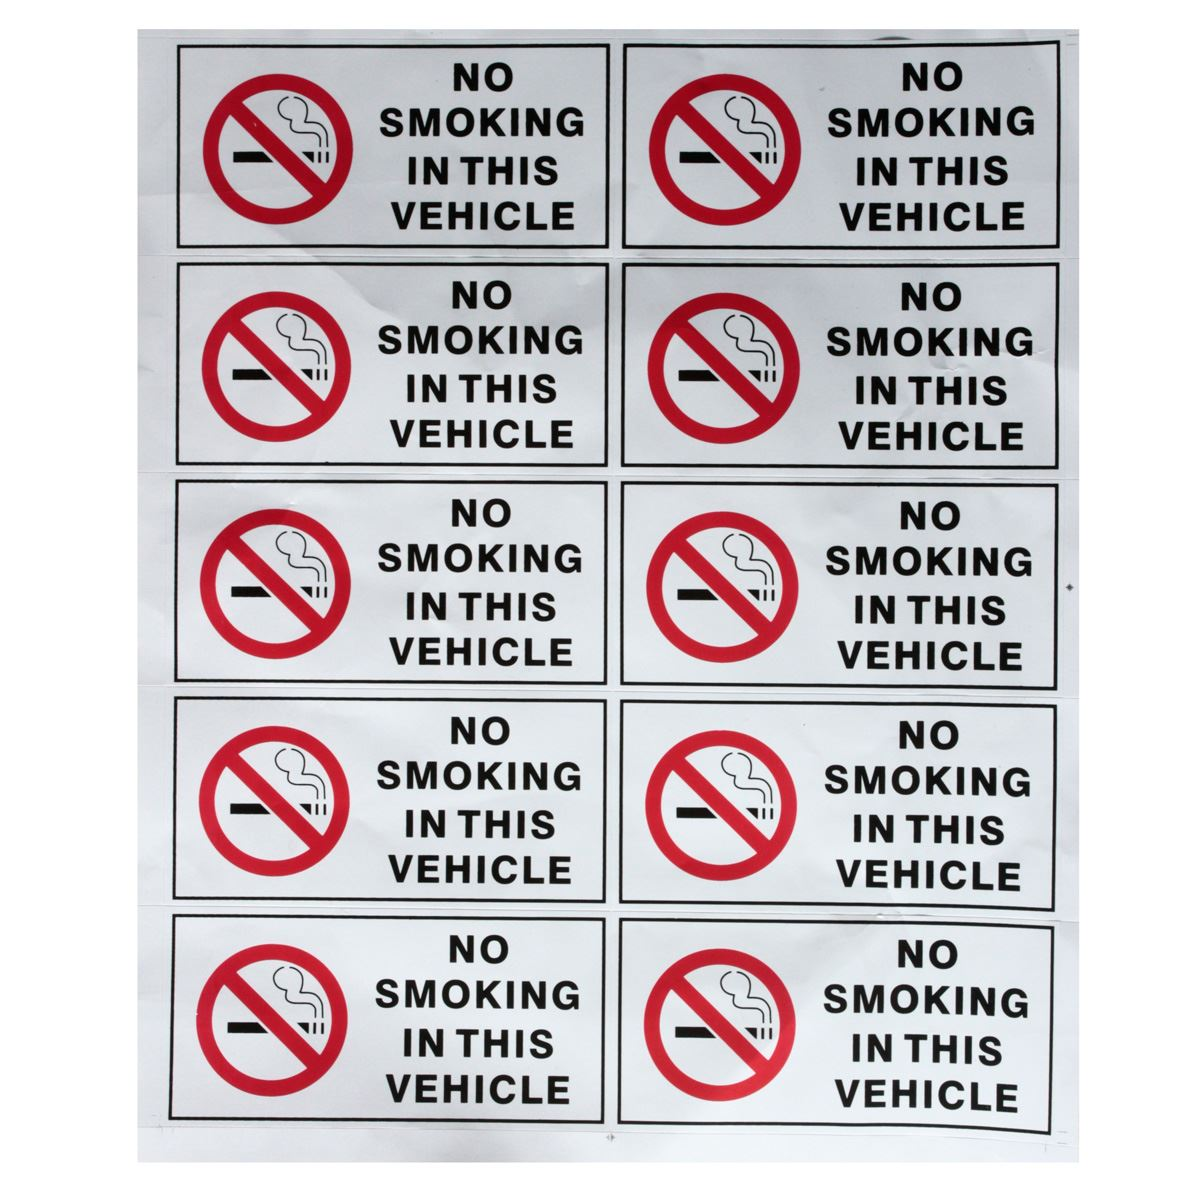 10Pcs NO SMOKING IN THIS VEHICLE Stickers Signs Vinyl Waring Mark Safety Decal Cars Taxi Hgv Fleet Car Styling signs